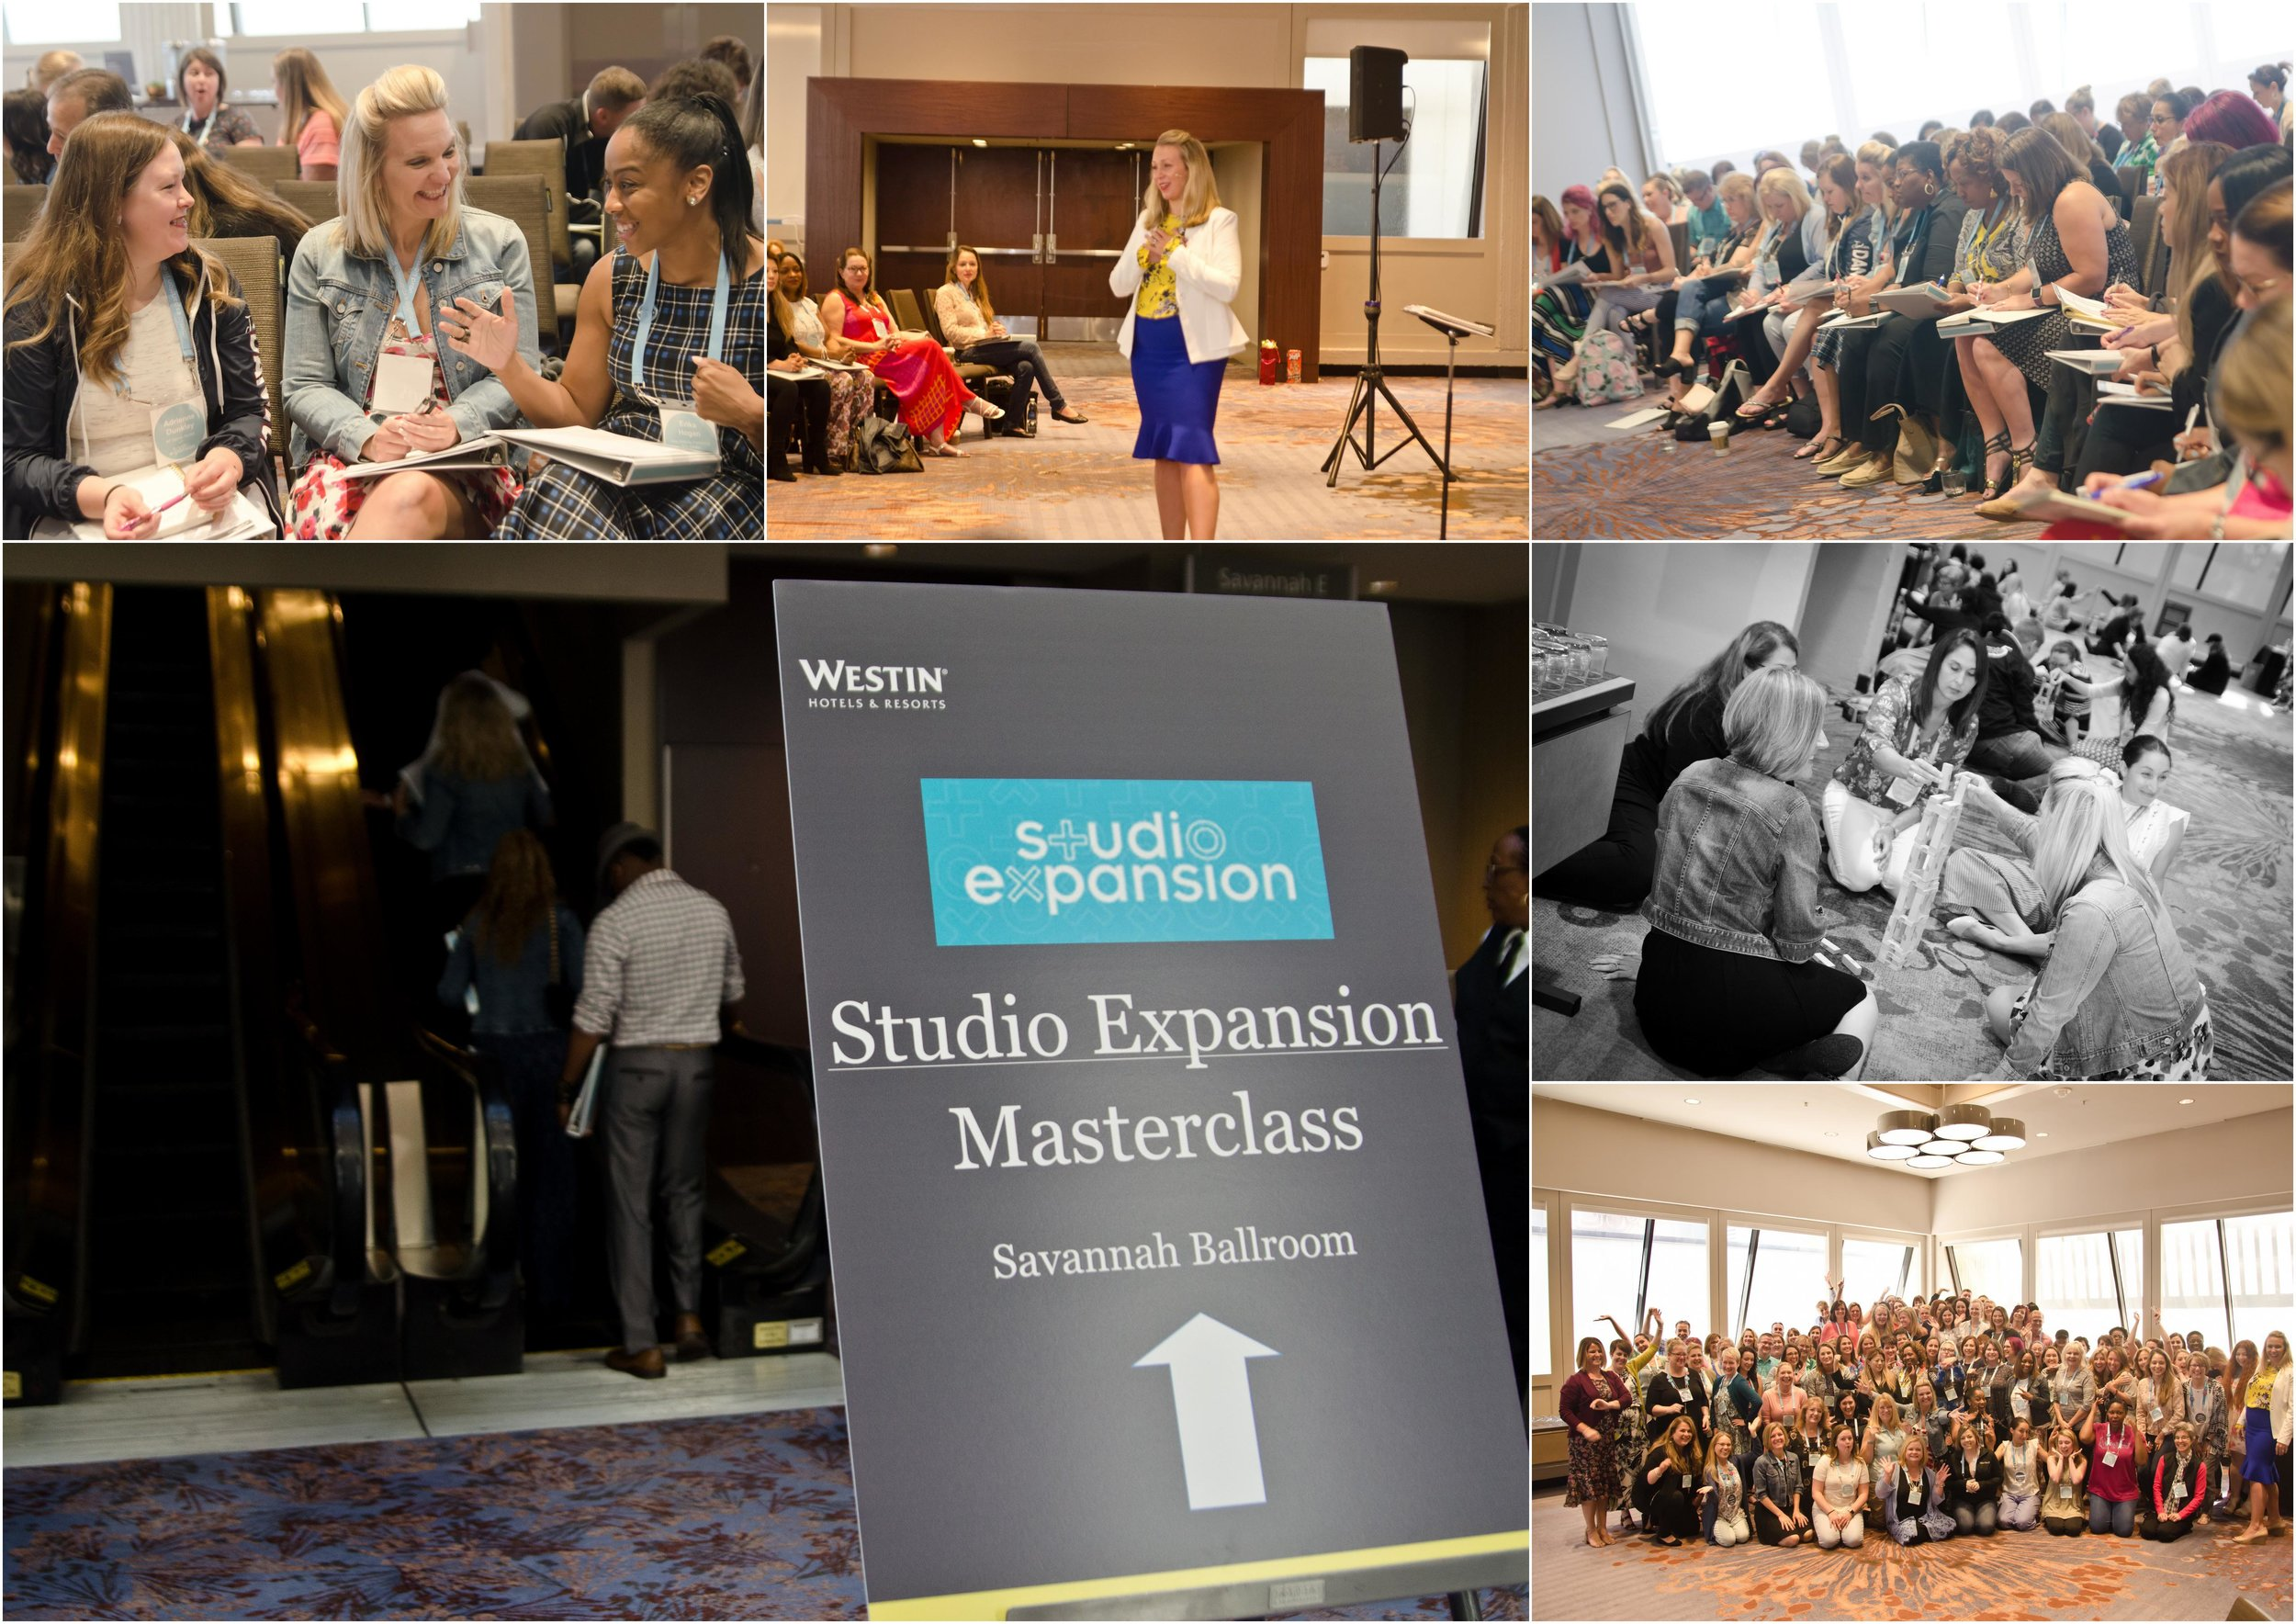 Studio Expansion Masterclass - Westin Hotel Atlanta- July 2018